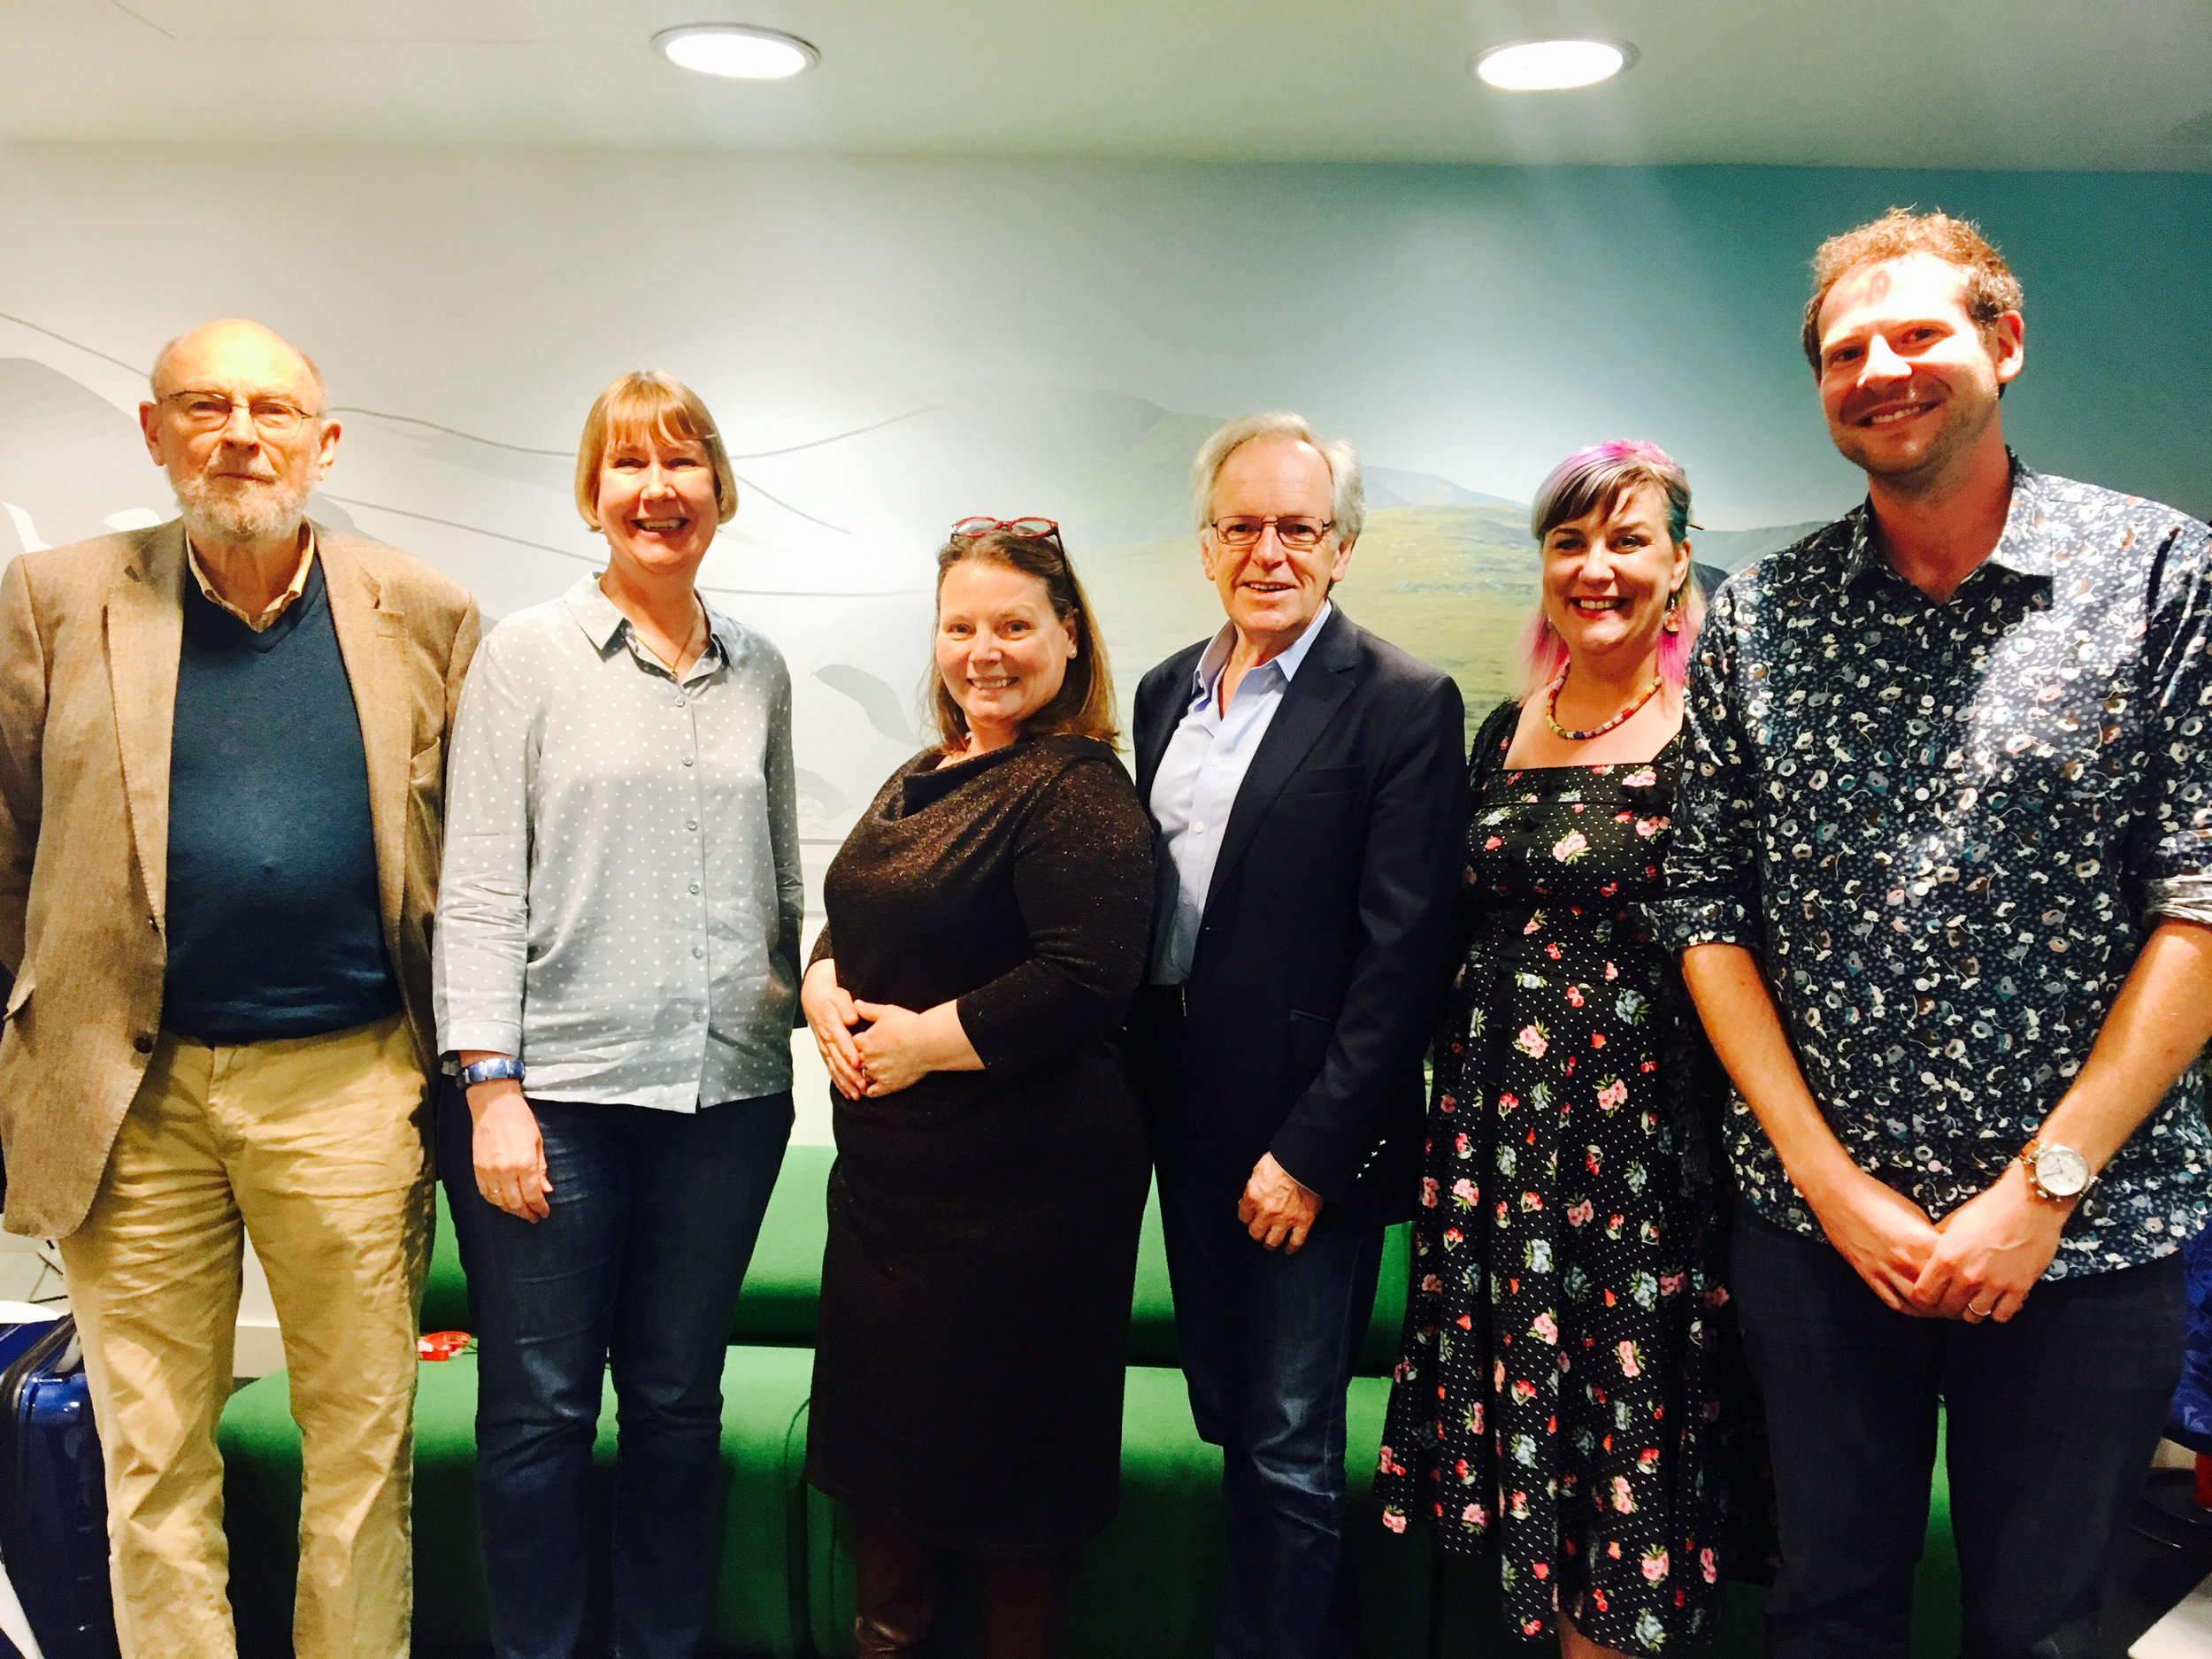 Julian Mitchell, Charlotte Green, Joanna Scanlan, Nigel Rees, Kate Fox and me, backstage at the BBC Radio Theatre for  Quote, Unquote;  2017.